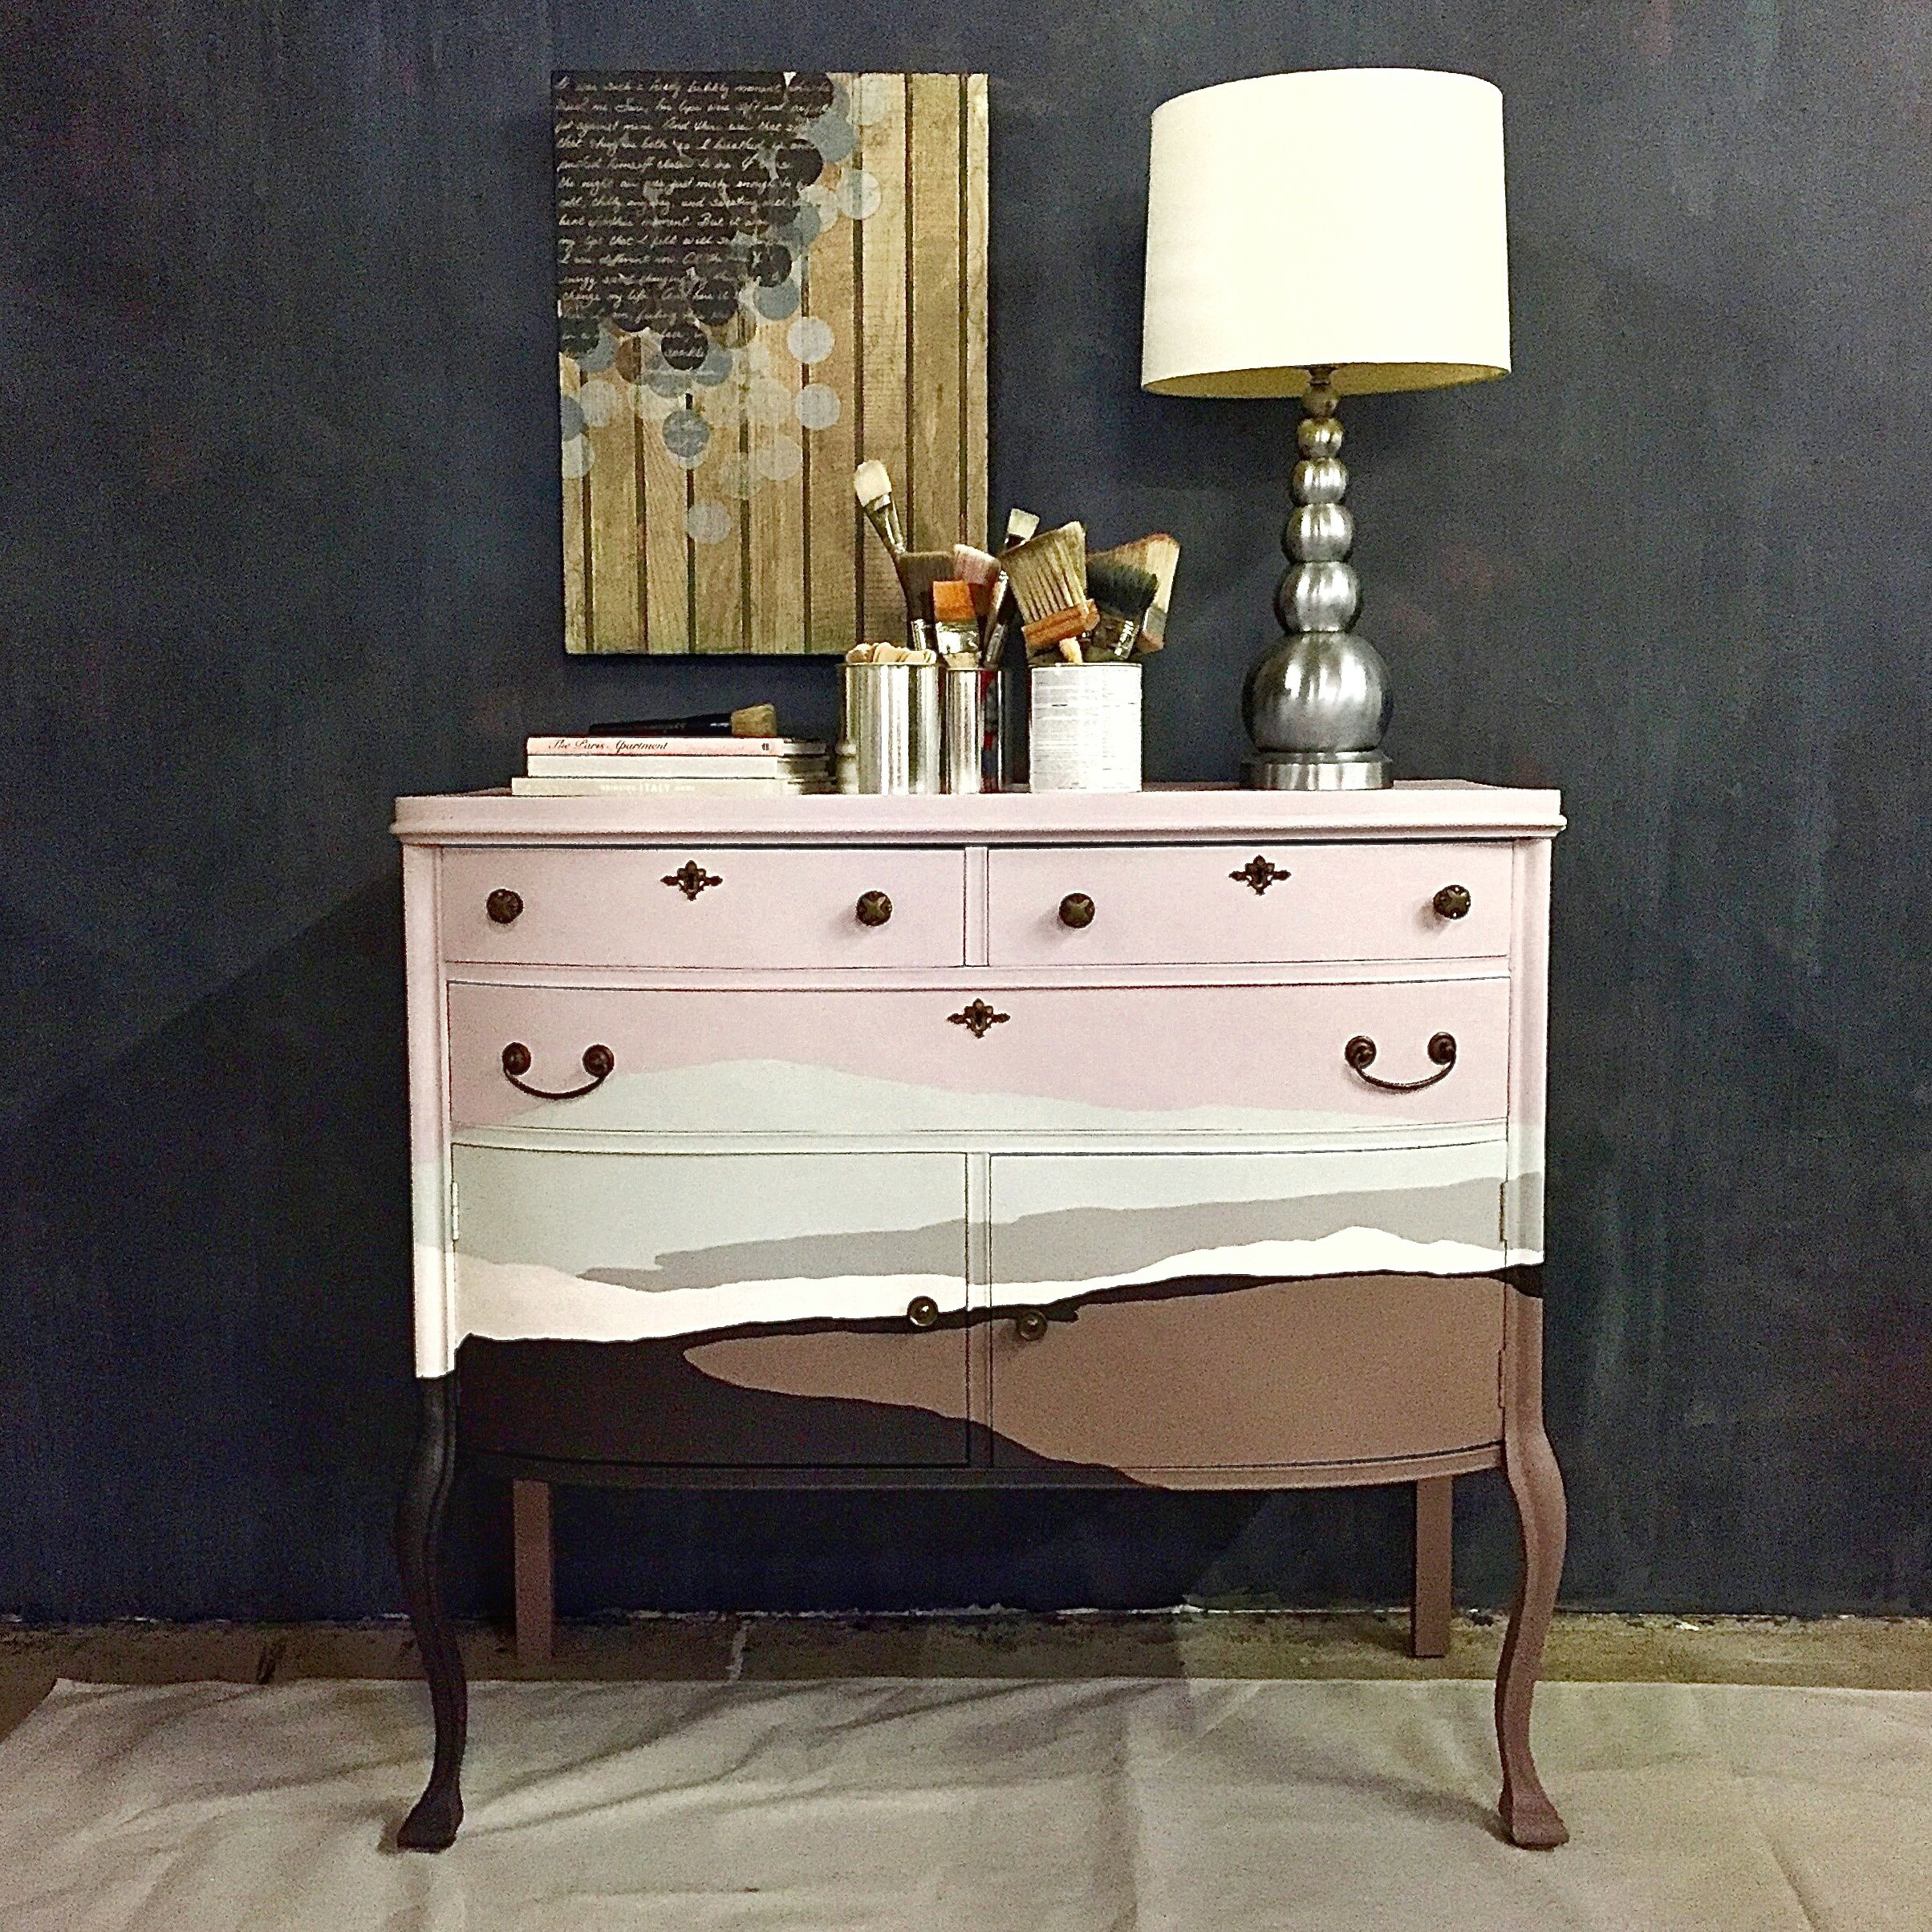 Shannon Kaye Painted Her Signature Torn Landscape Mural Motif On A Beautiful Dresser With Acrylic Paints